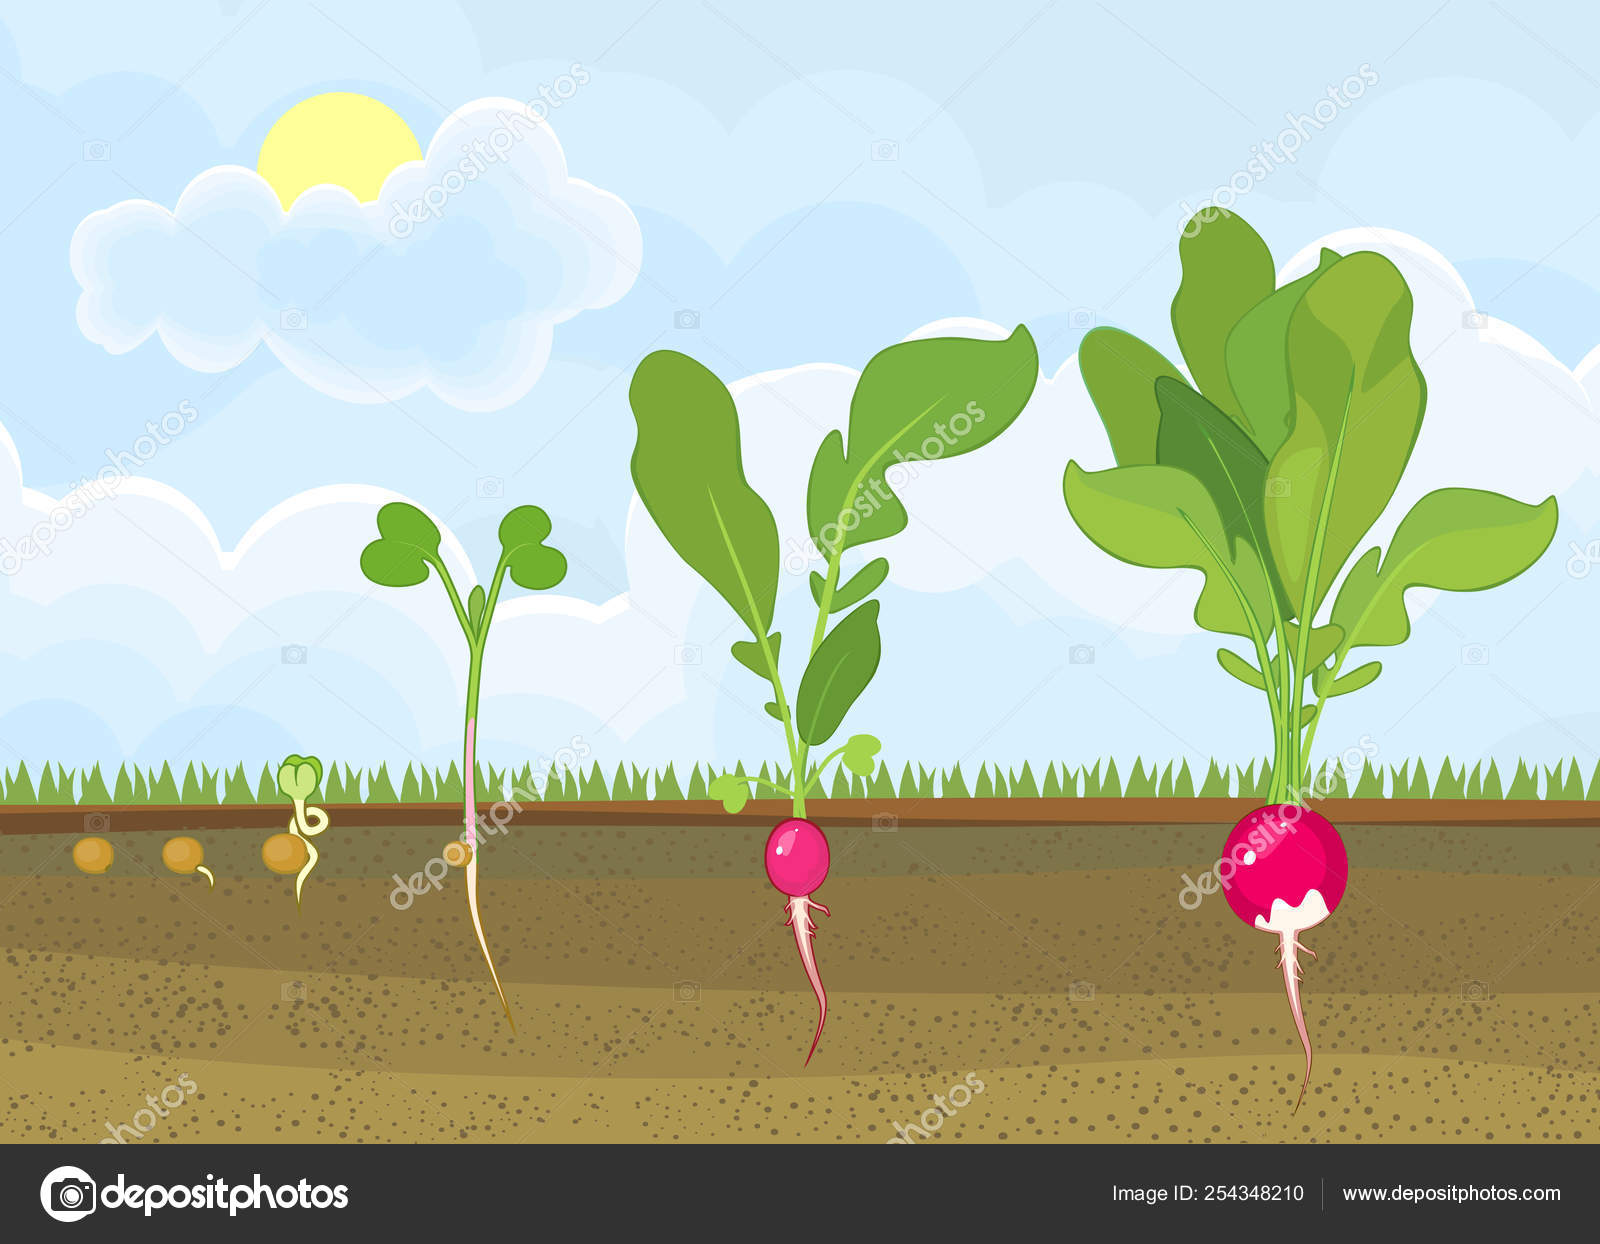 Life Cycle Radish Plant Stages Radish Growth Seed Sprout